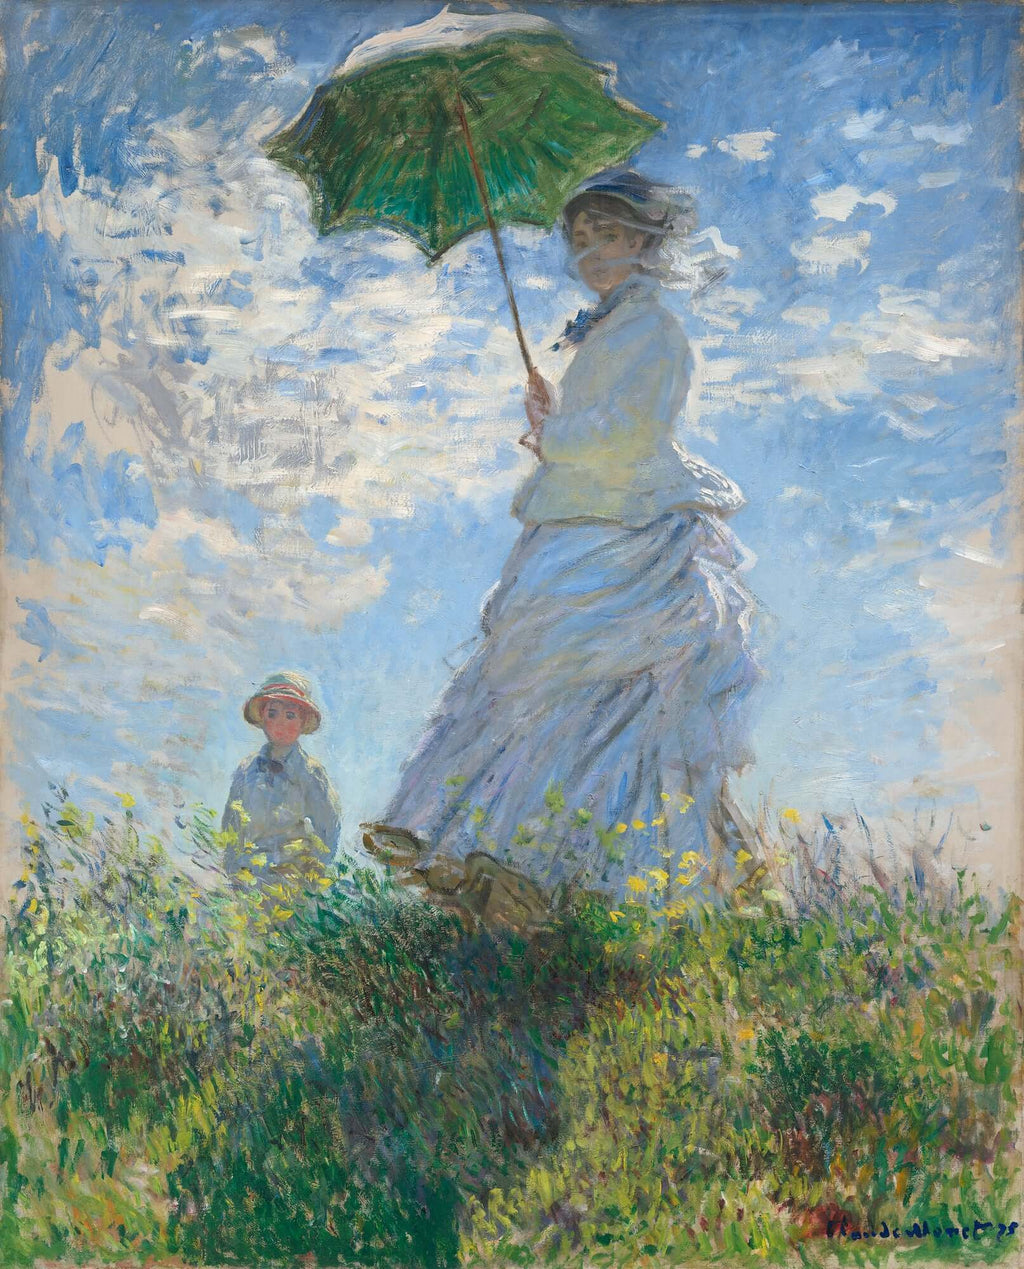 Photo Tiles, Acrylic Prints, Photo Wall Tiles, Wall Art, Wall Decor, Home Decor, Photo Prints, Claude Monet, Woman with a Parasol, Madame Monet and Her Son, 1875 - PicFoams.com